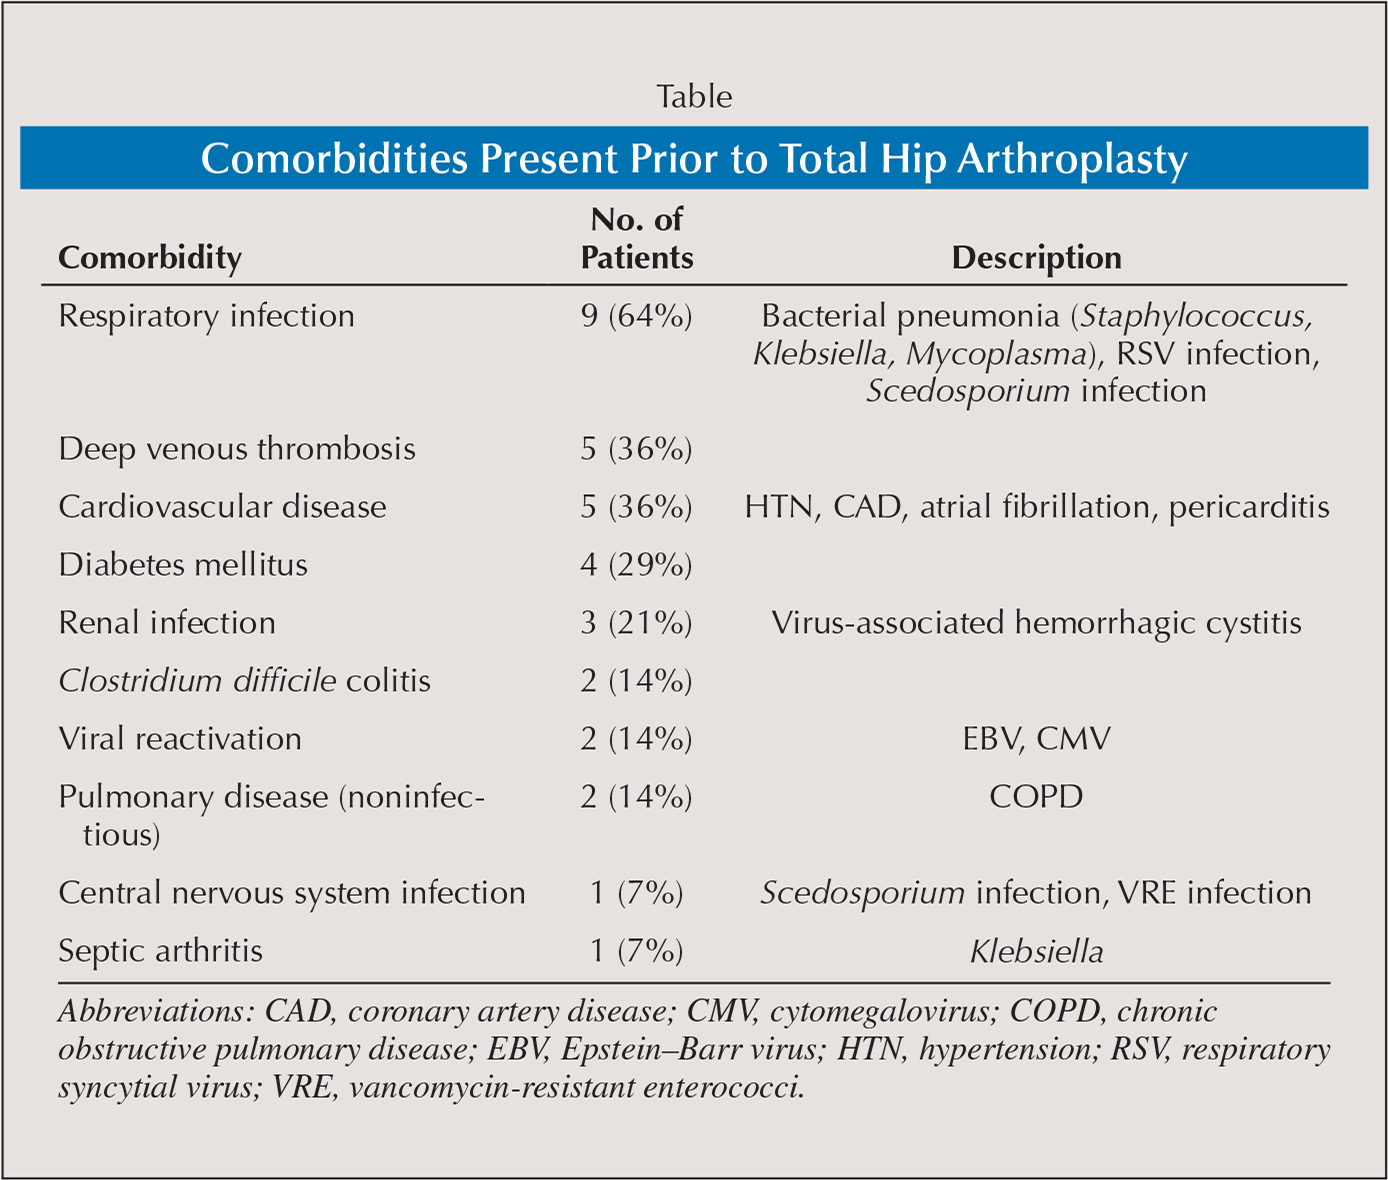 Comorbidities Present Prior to Total Hip Arthroplasty